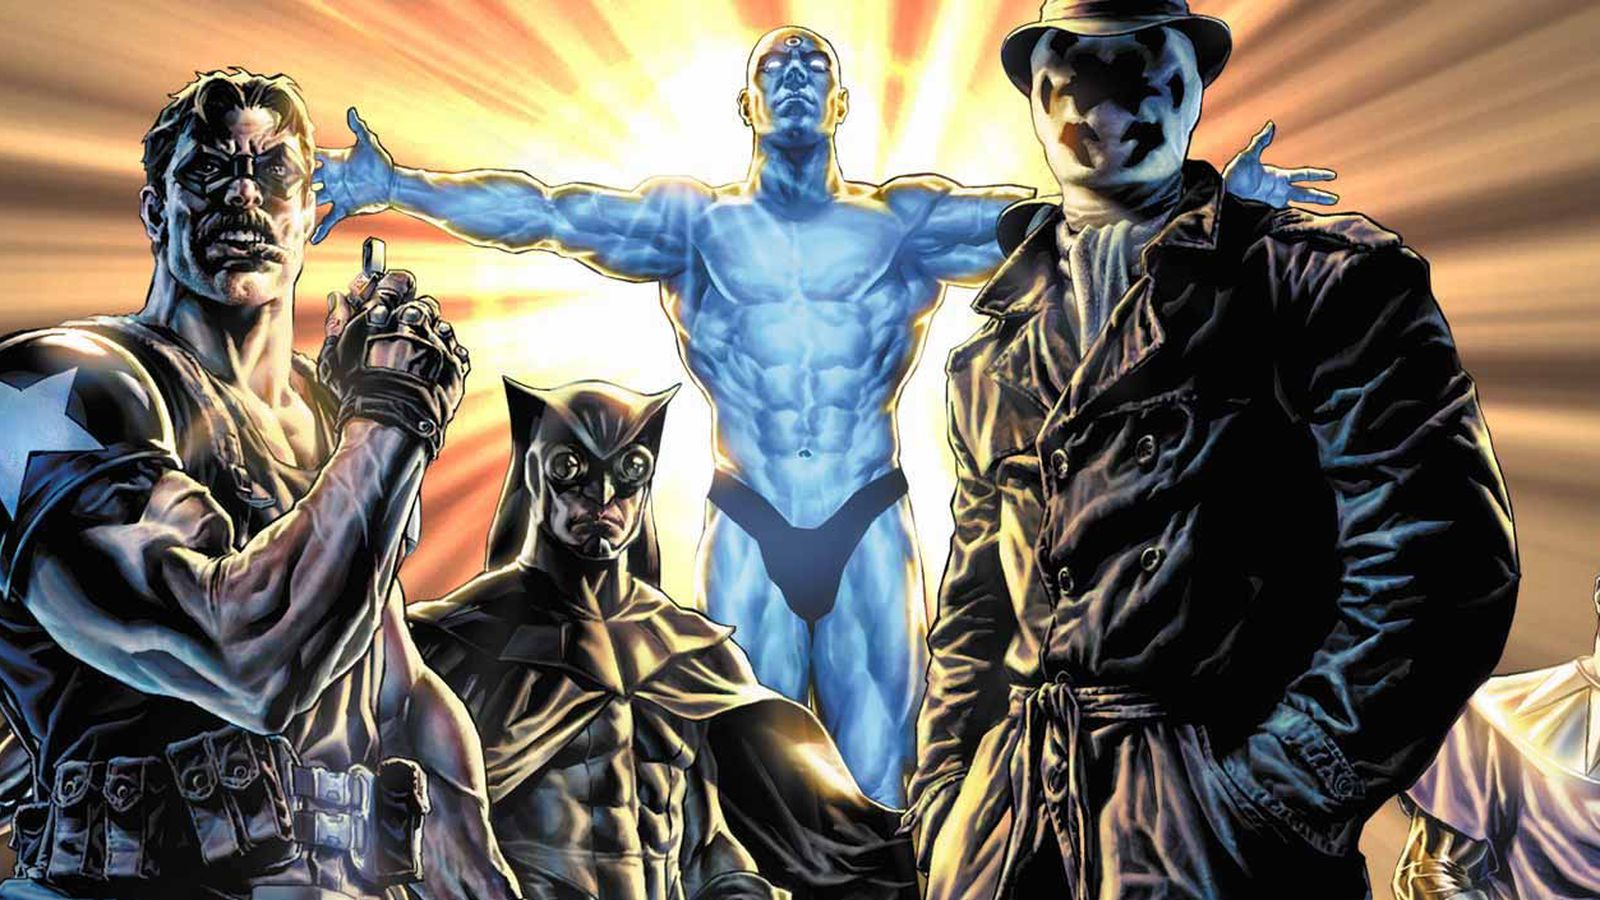 Rorschach Watchmen Wallpaper Hd Stop Making Watchmen Adaptations Polygon